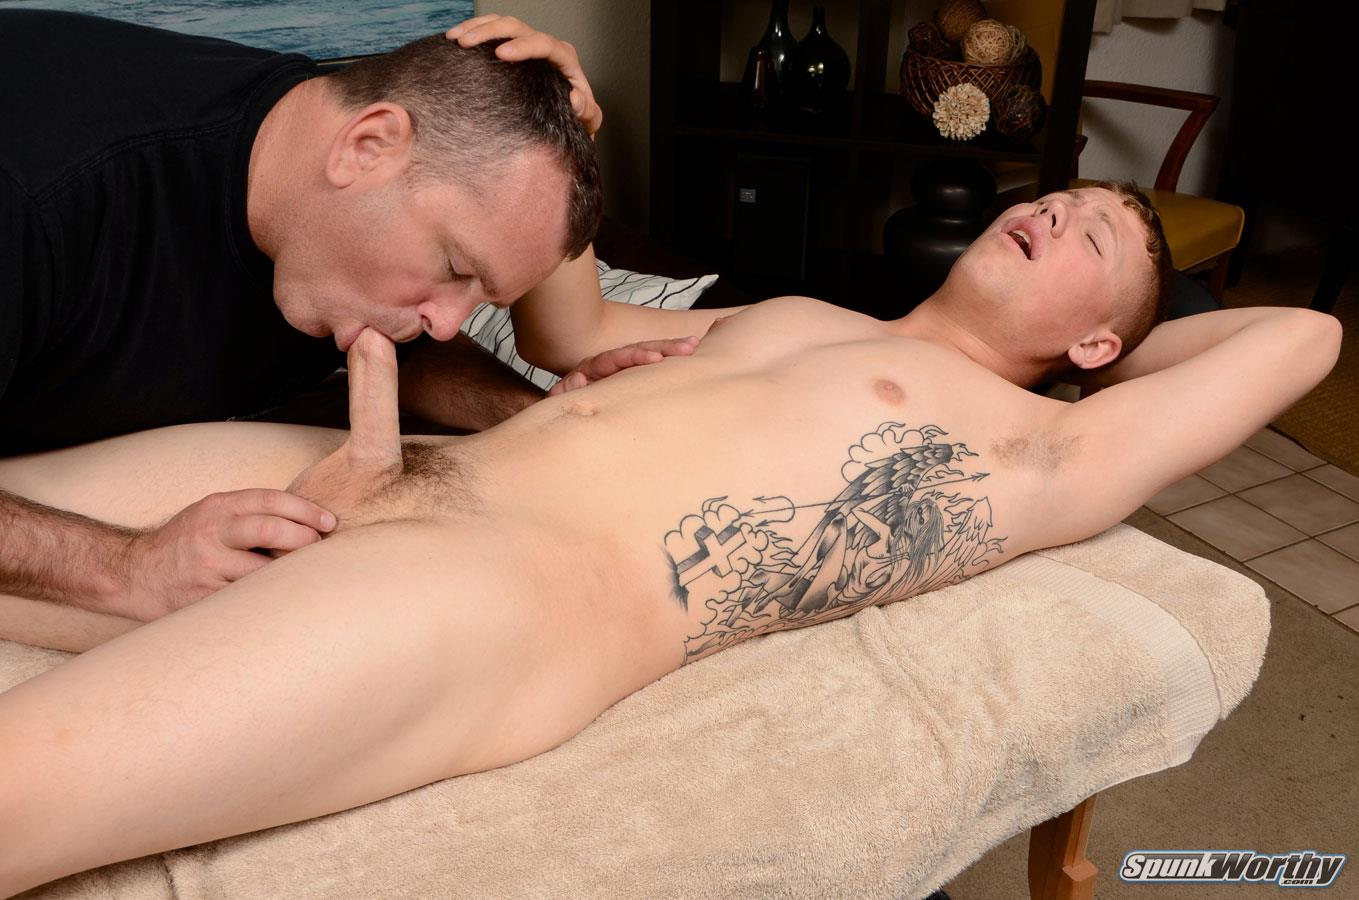 Spunk-Worthy-Sean-Straight-Marine-Getting-Massage-With-Happy-Ending-Amateur-Gay-Porn-13 Straight Marine Gets A Massage With Happy Ending From A Guy